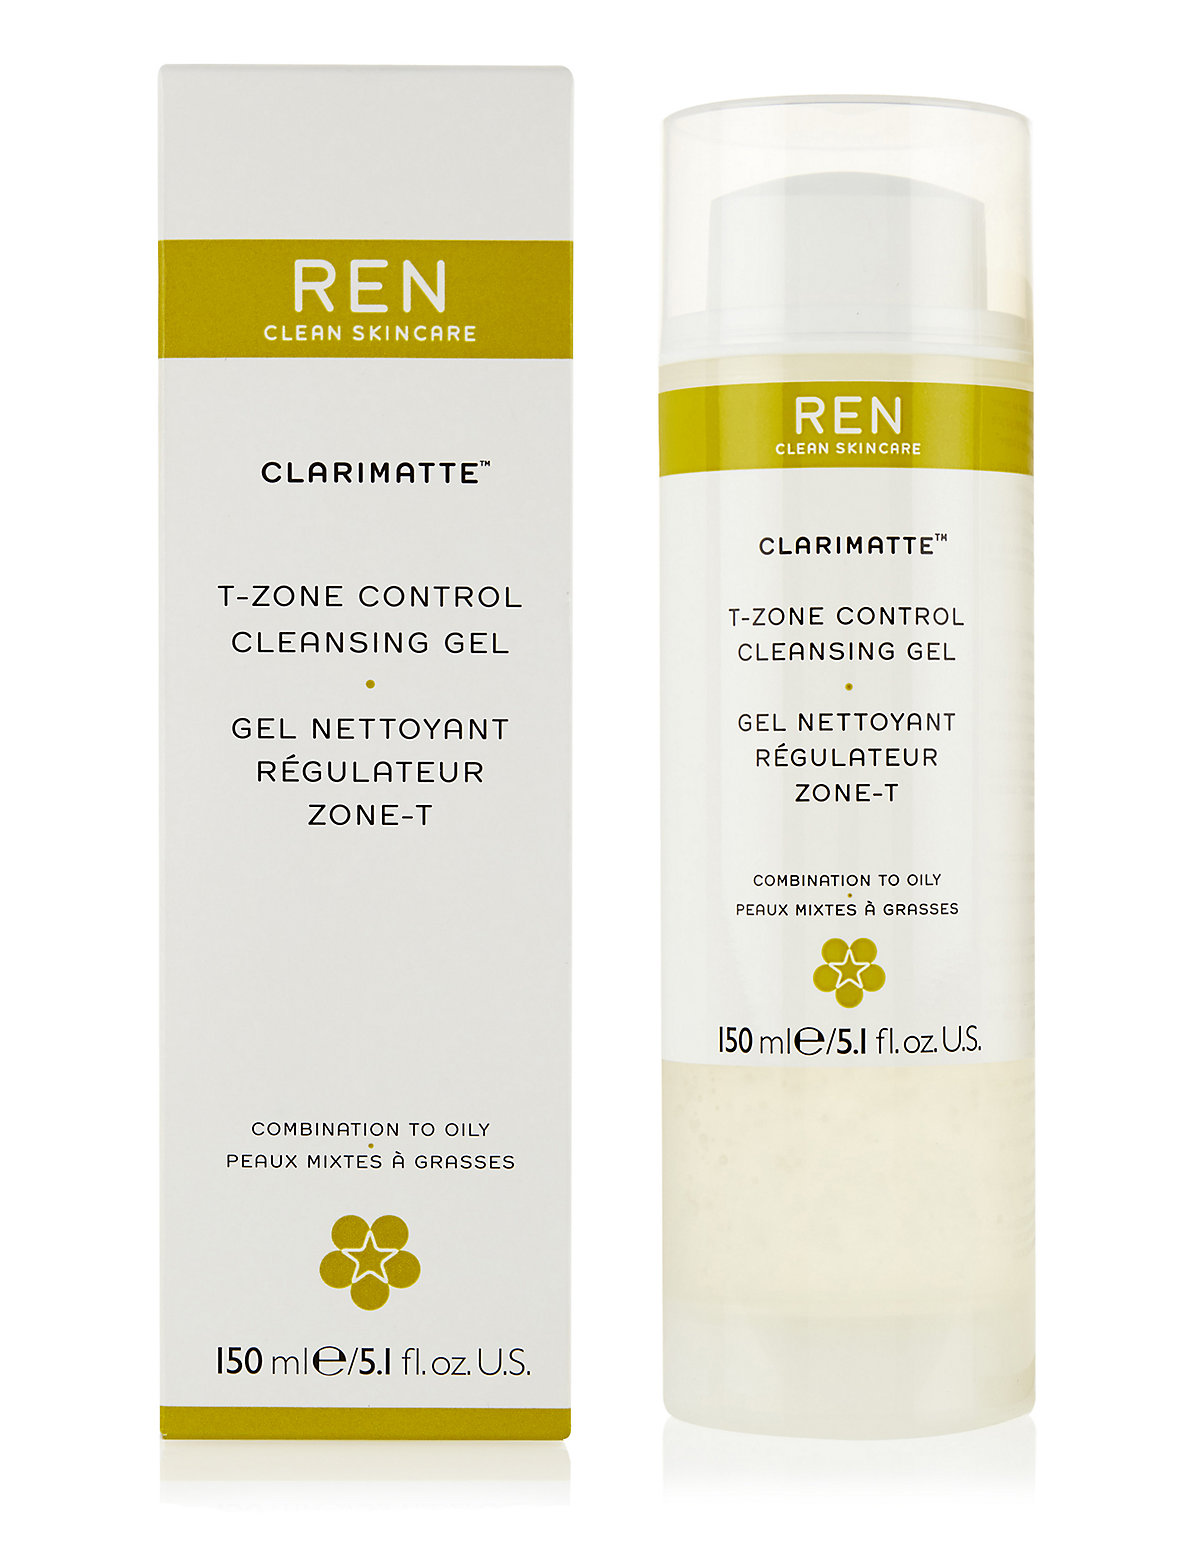 REN Clarimatte T-Zone Control Cleansing Gel 150ml